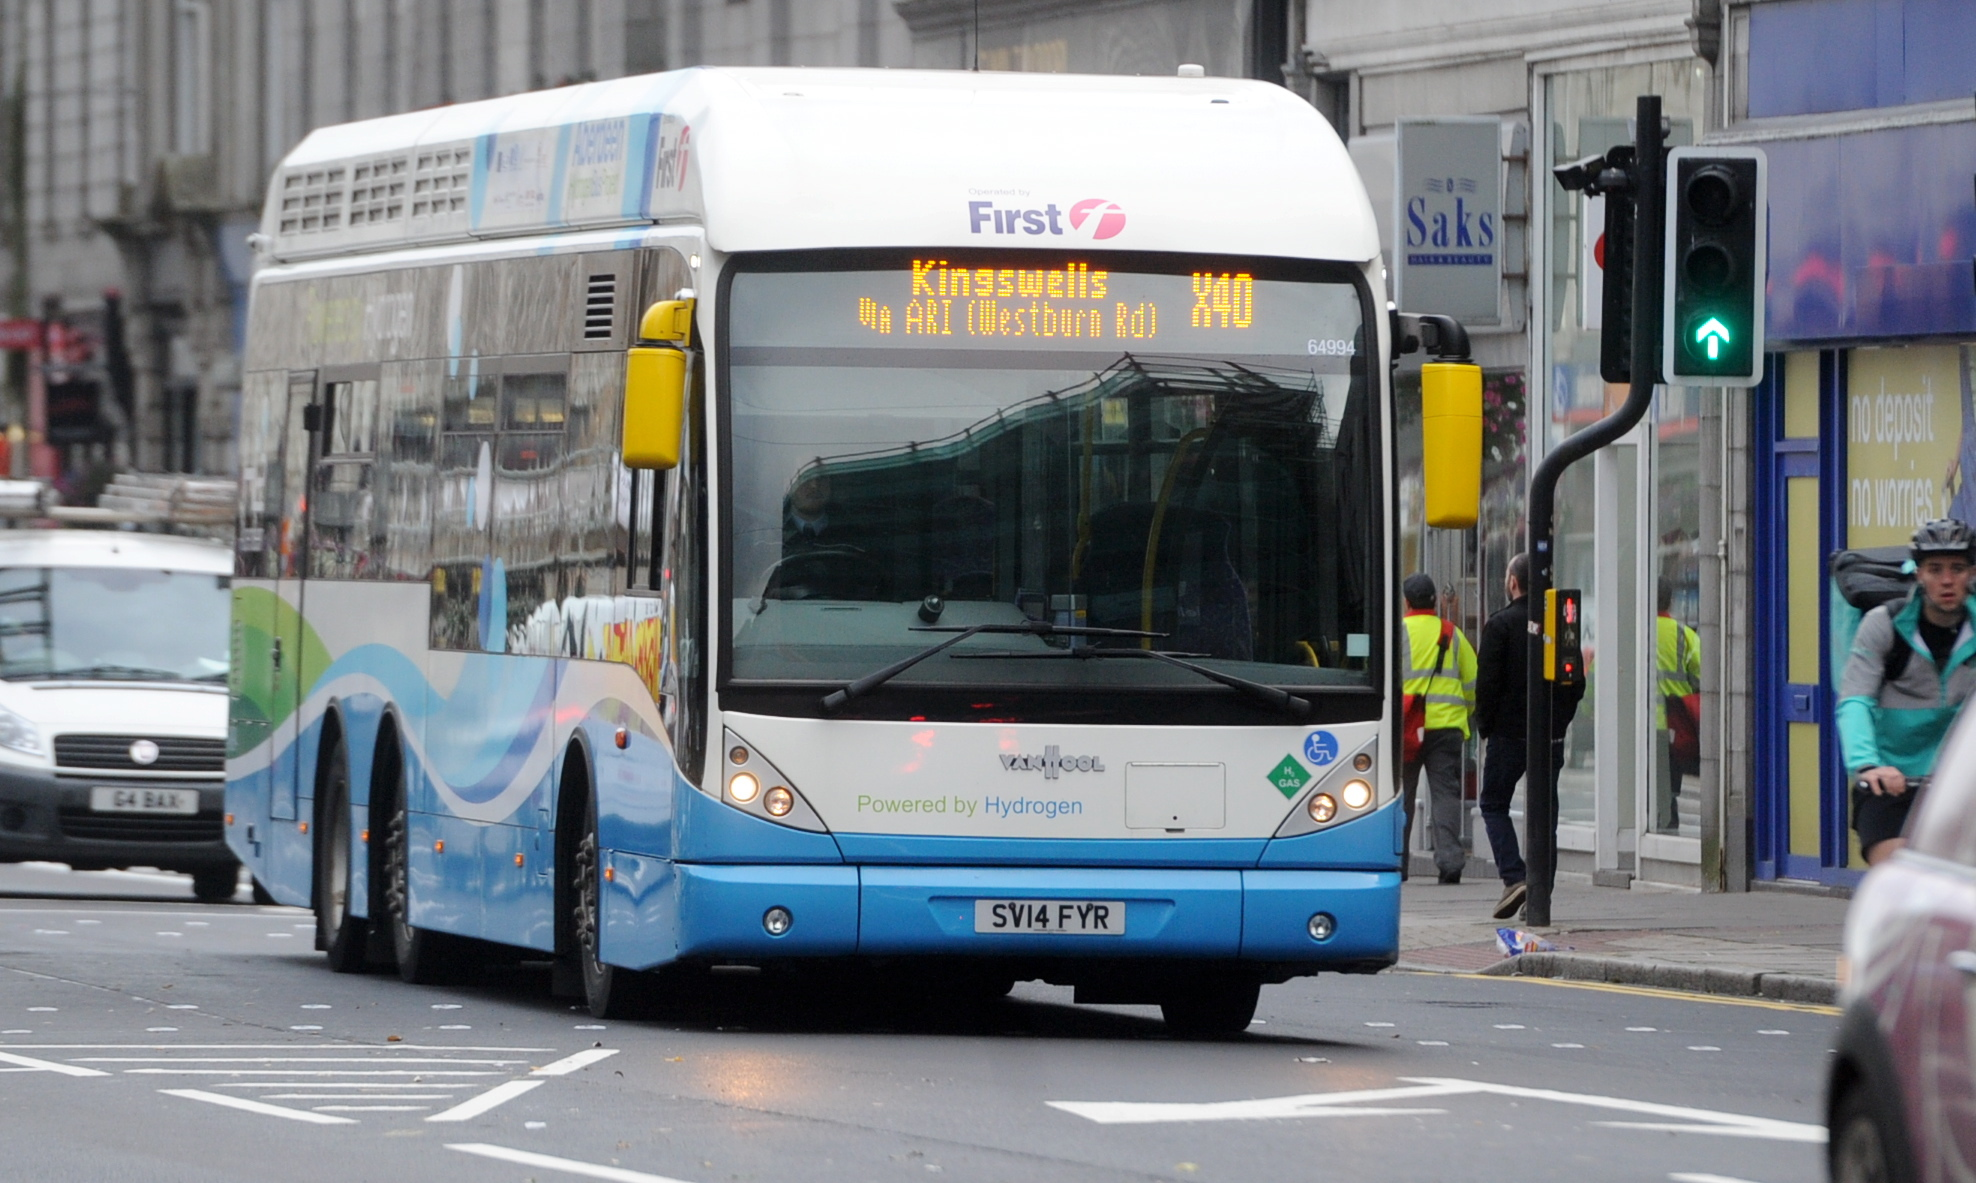 The X40 bus will no longer travel to Kingswells from April 1.